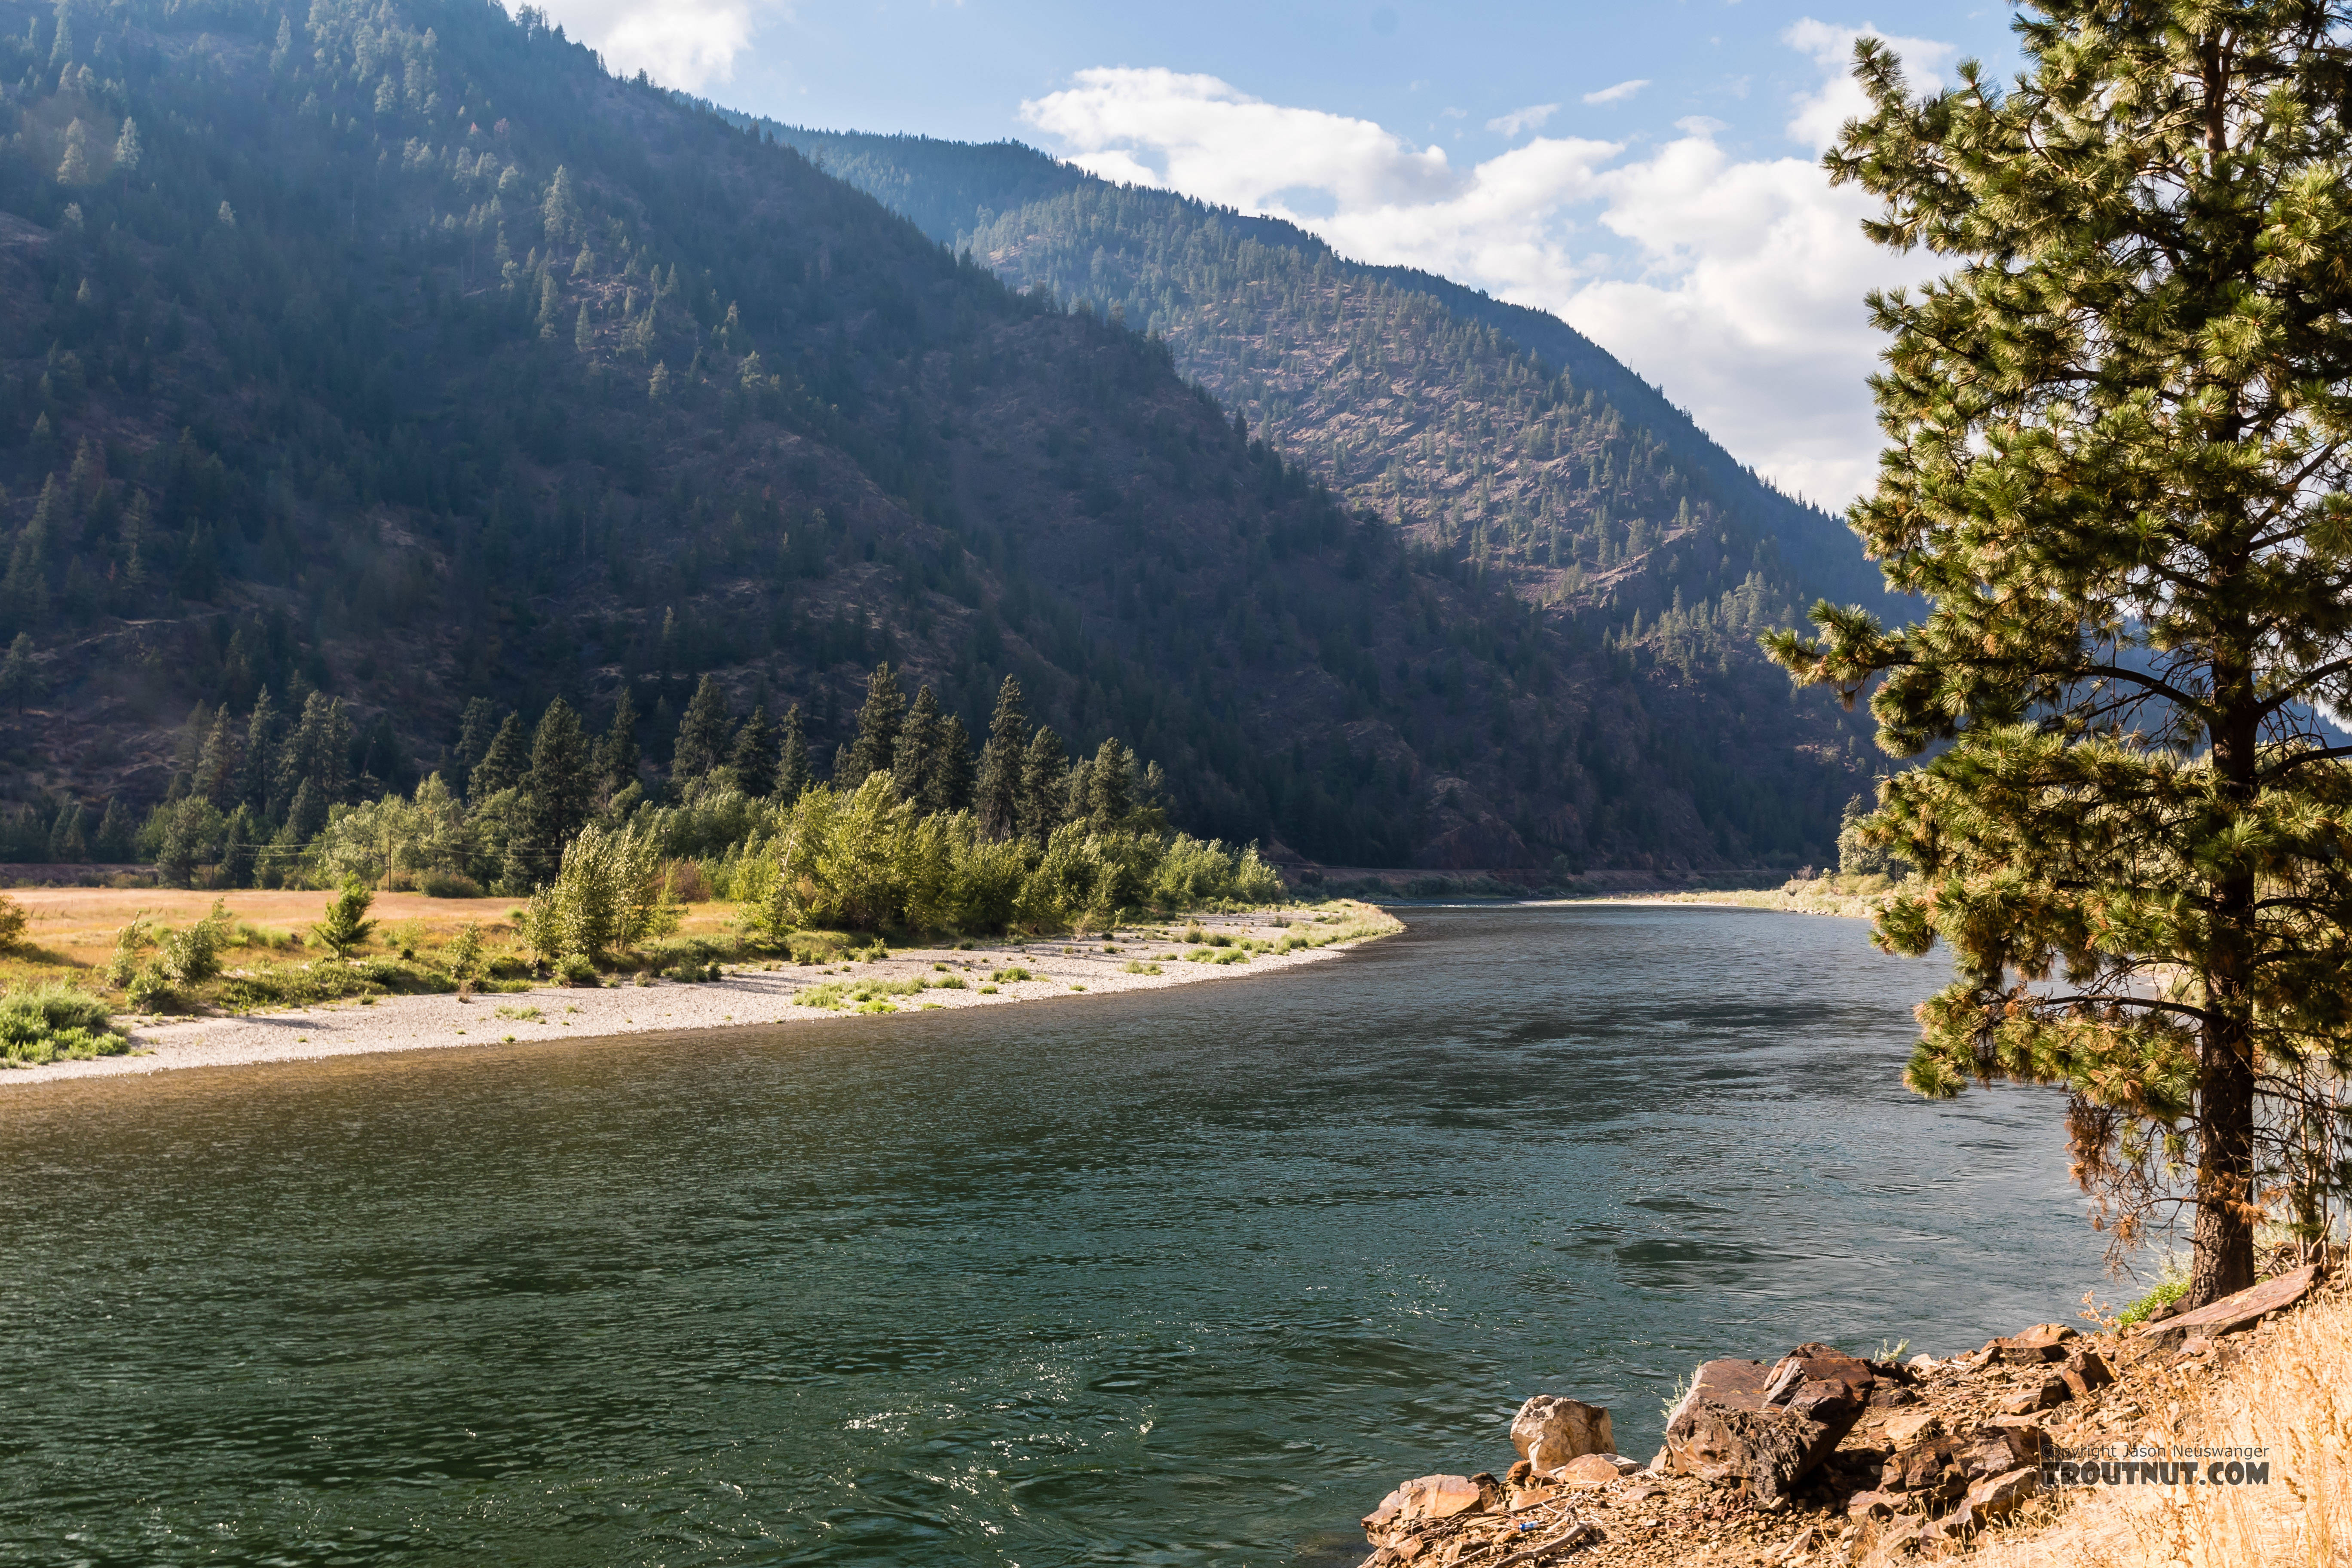 From the Clark Fork River in Montana.